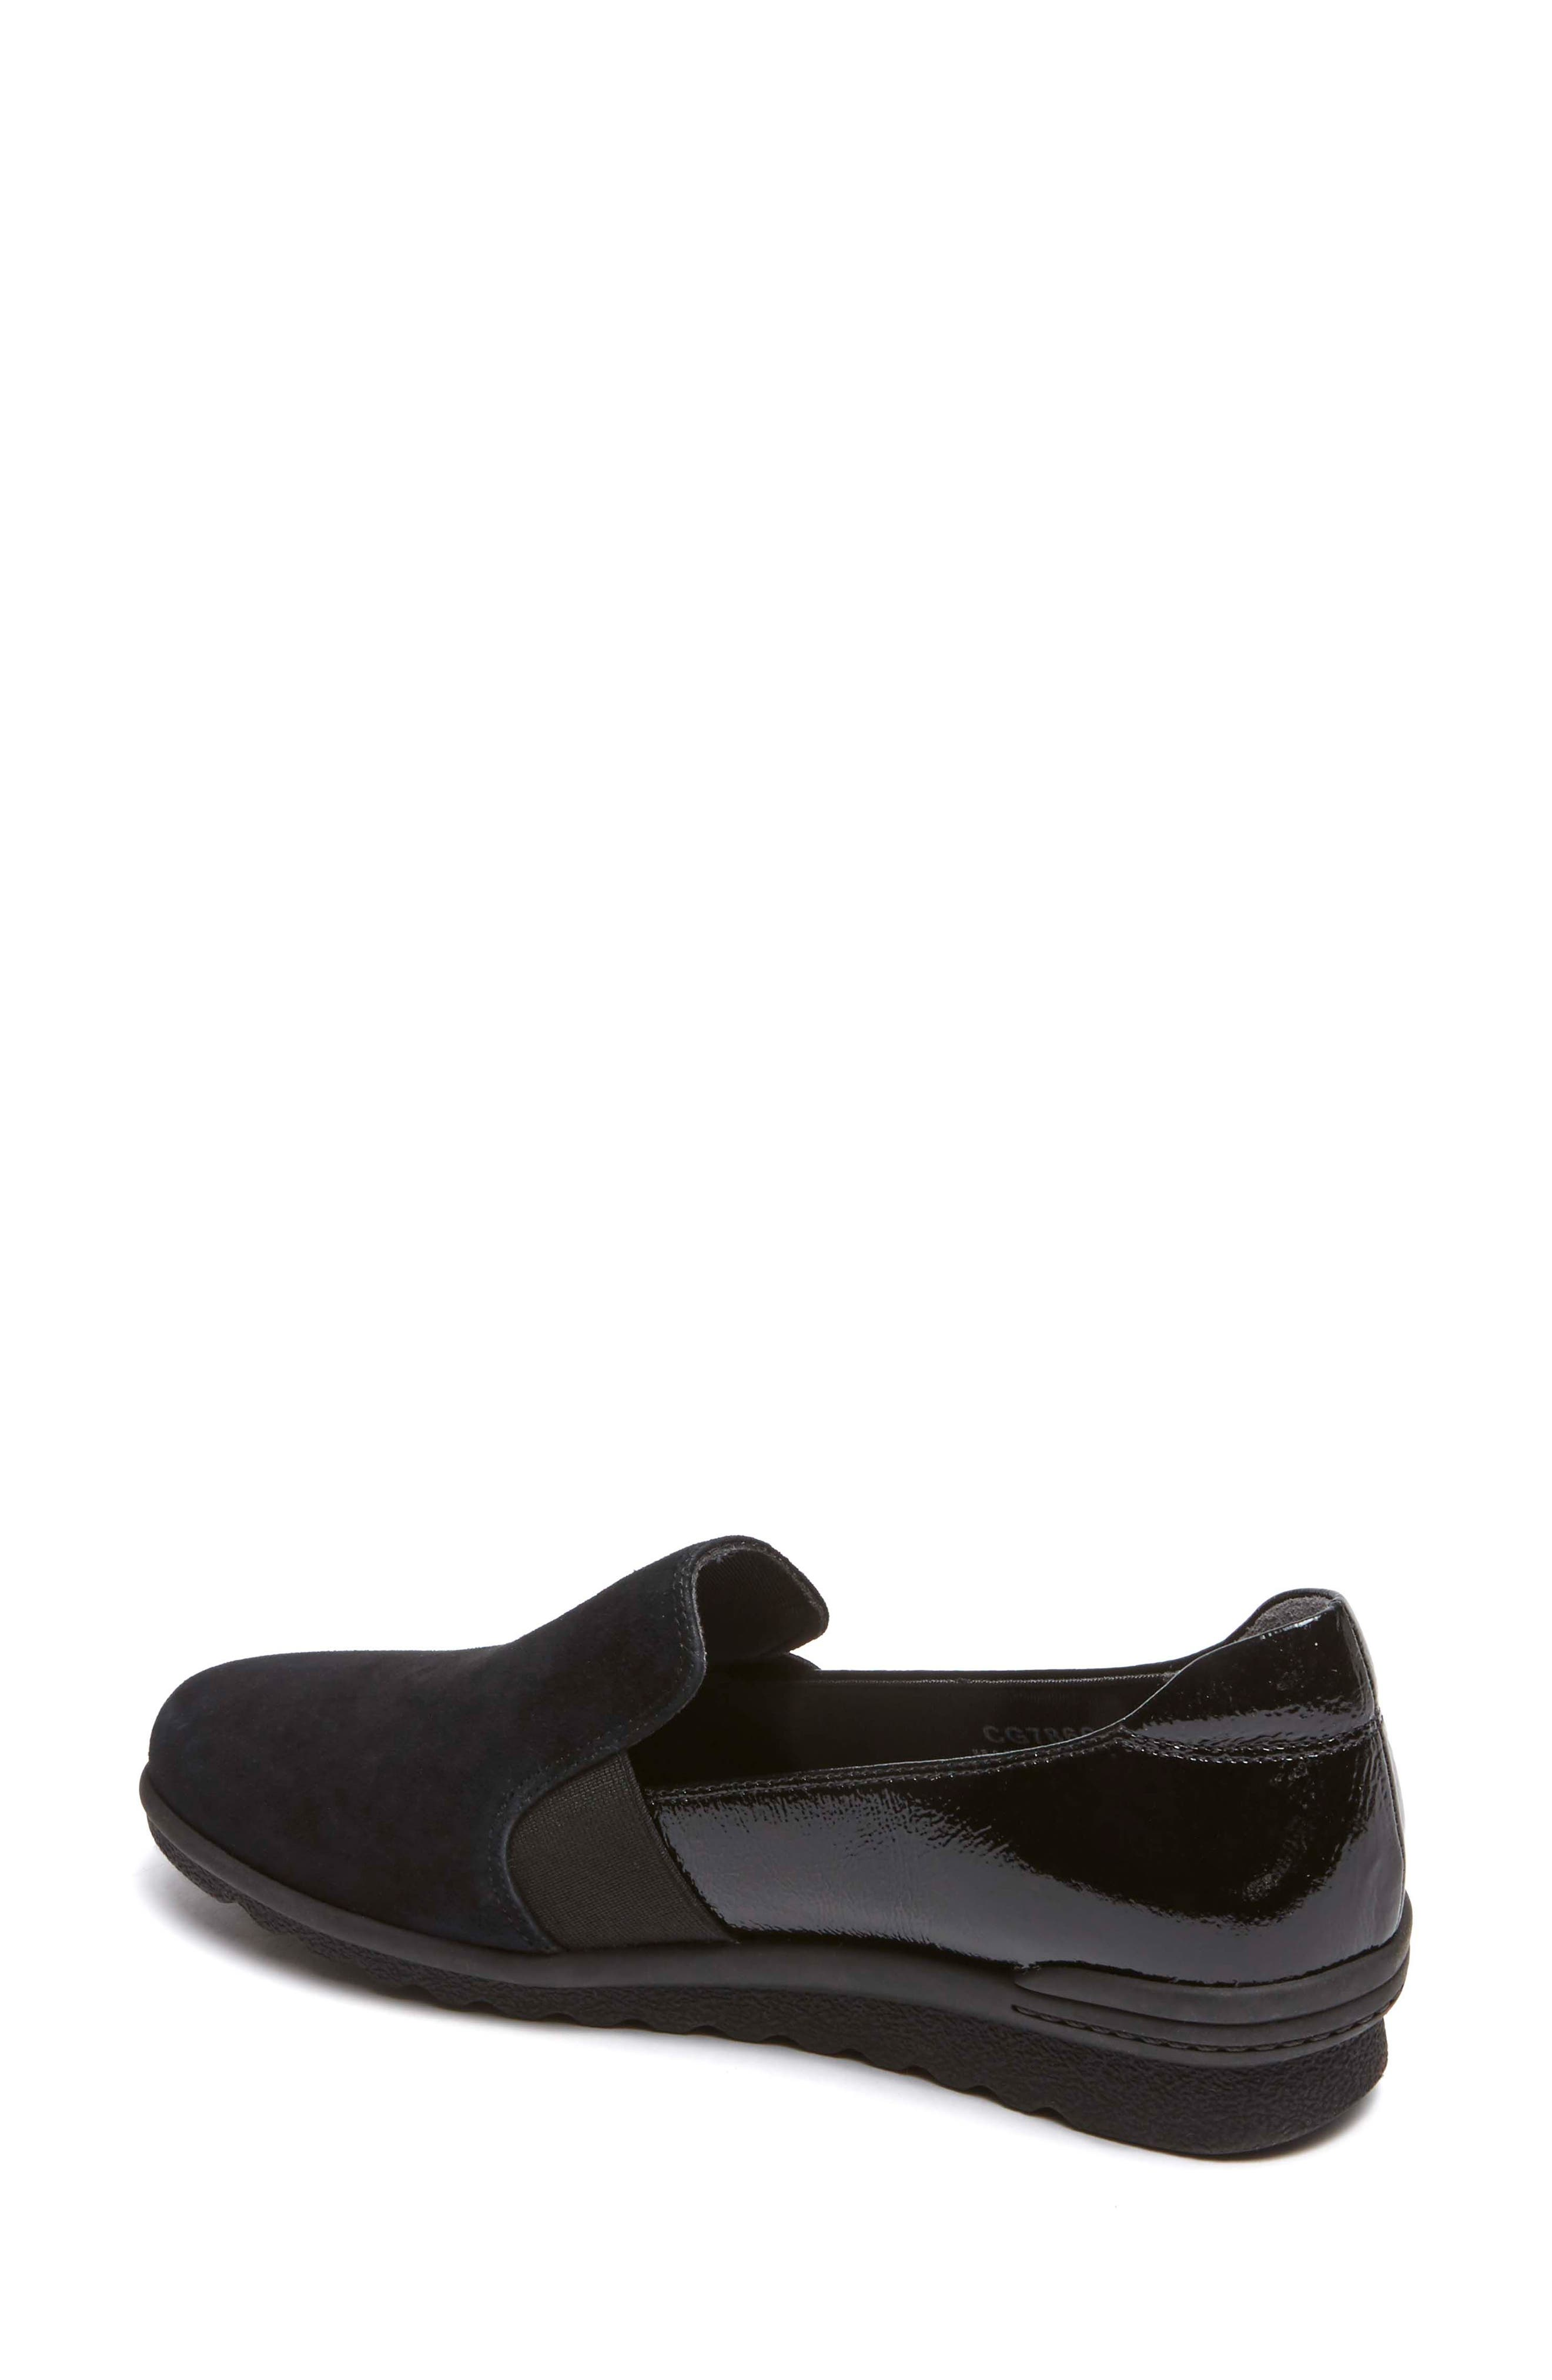 Chenole Loafer,                             Alternate thumbnail 2, color,                             BLACK SUEDE